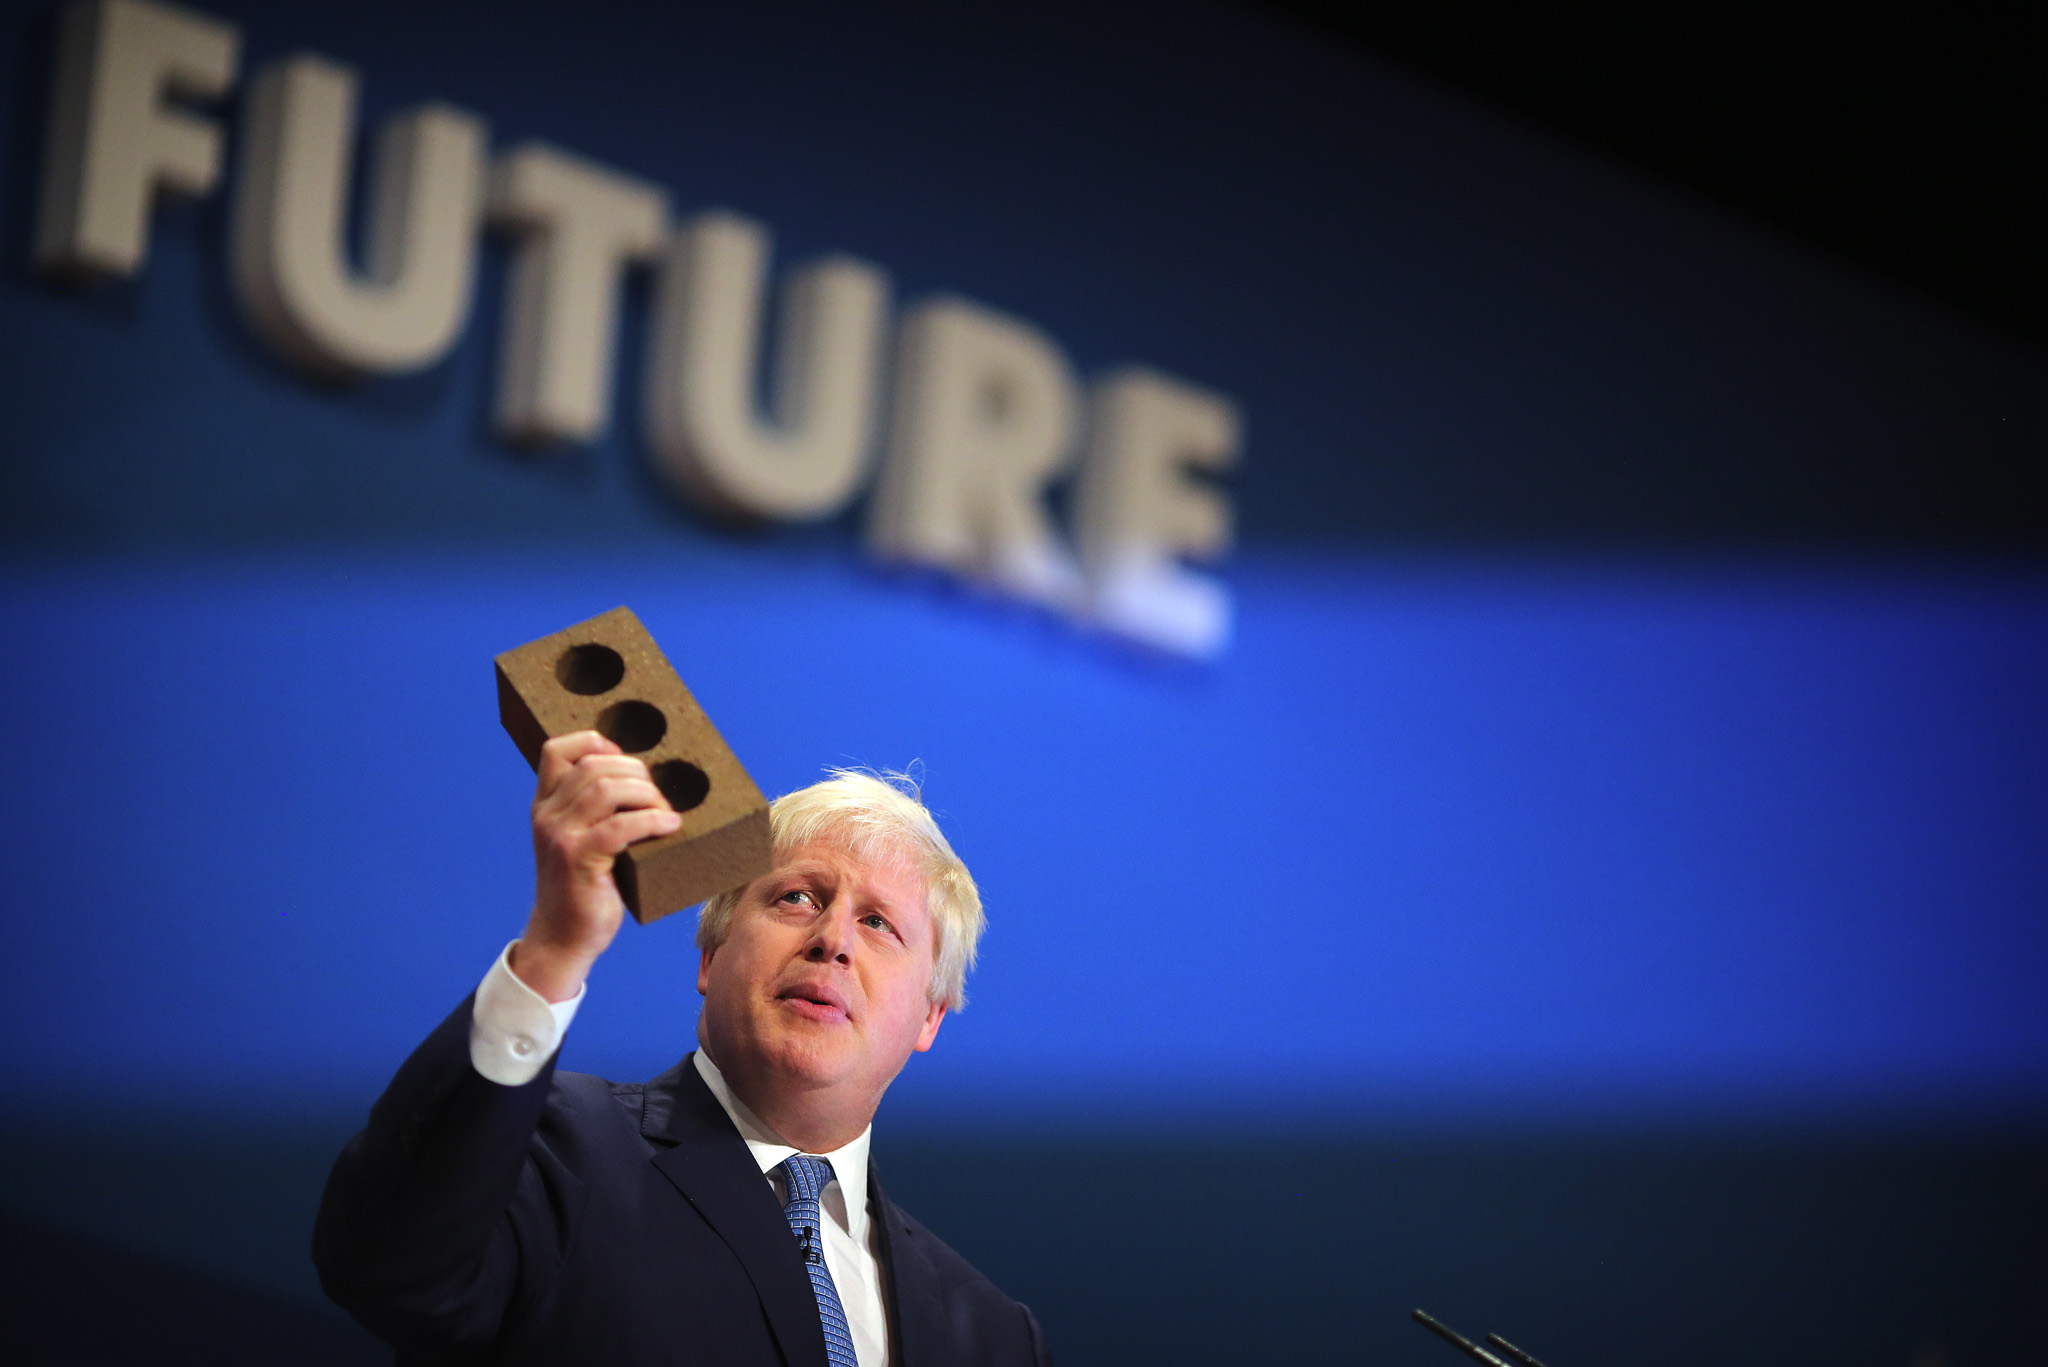 Boris Johnson, London Mayor, delivers his speech at the Conservative party conference in Birmingham.